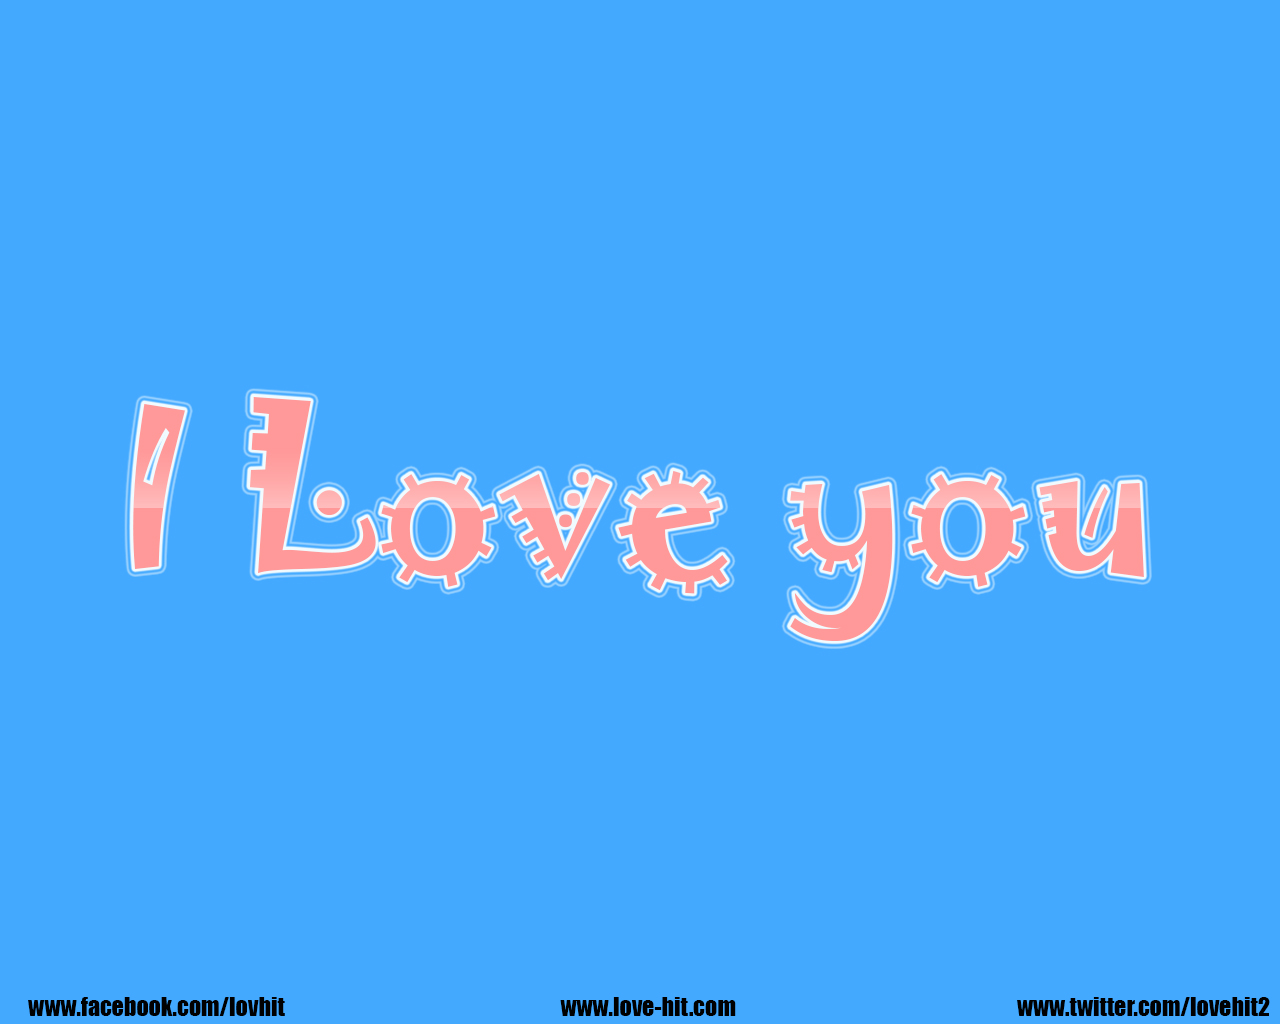 I love you - light blue